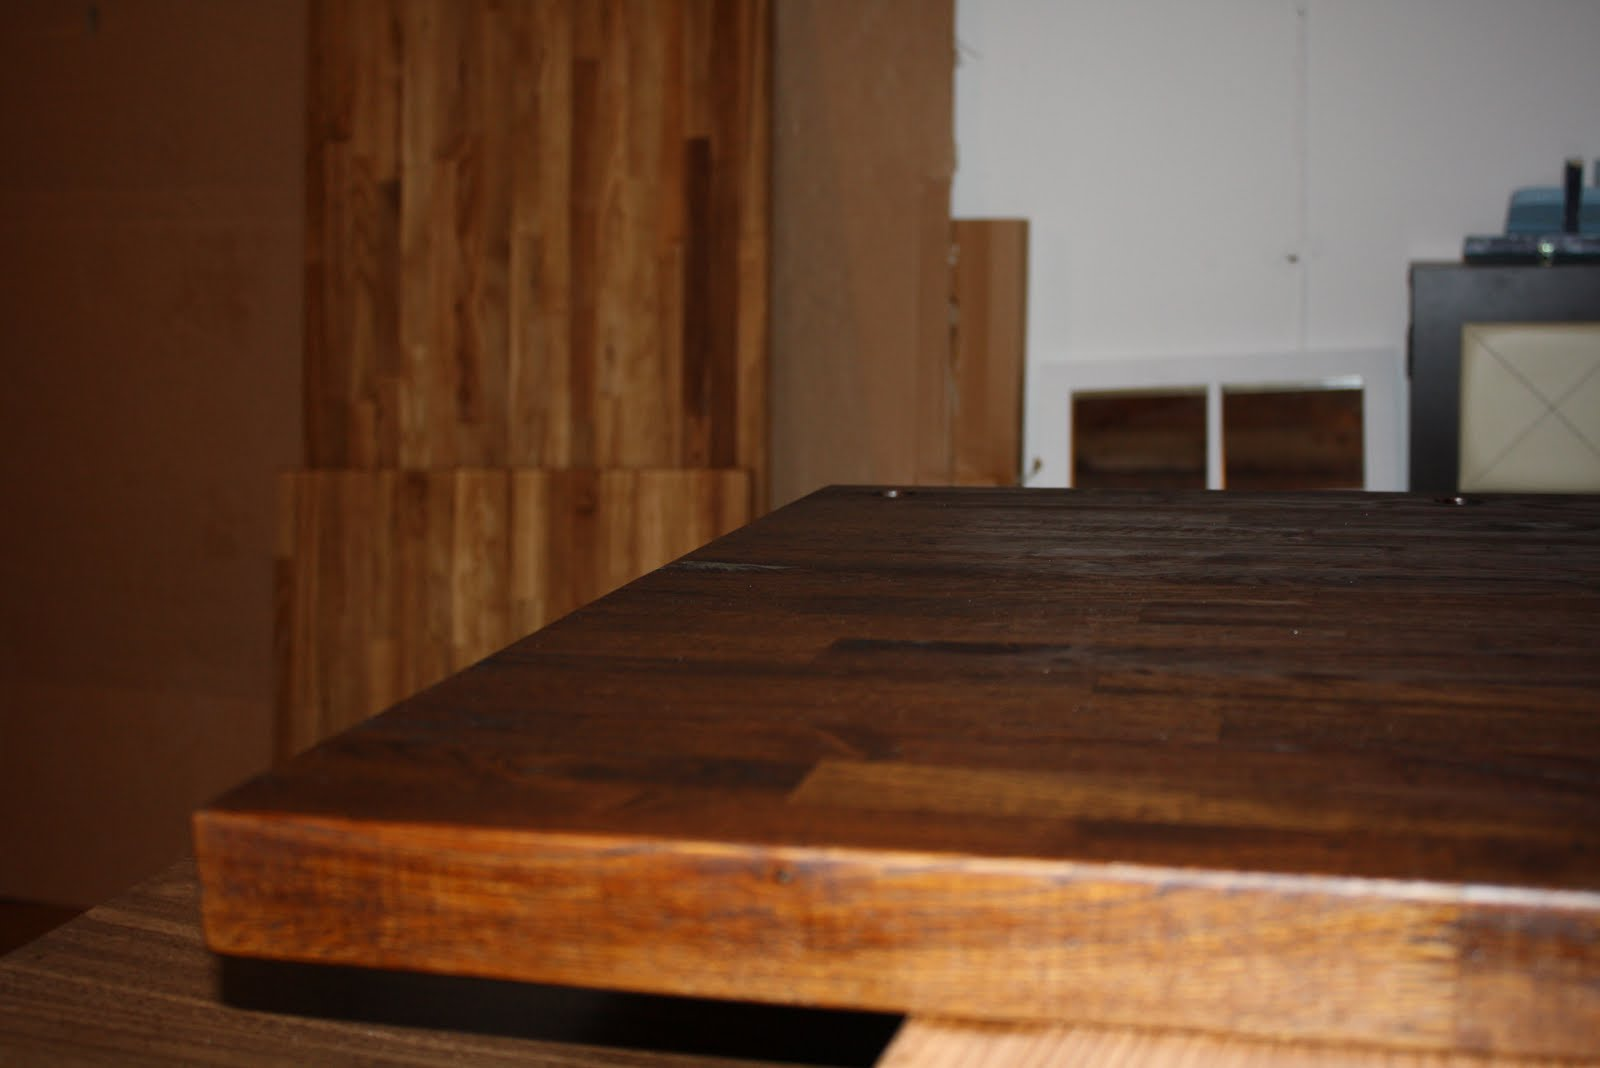 stillwater story how to stain butcher block countertops